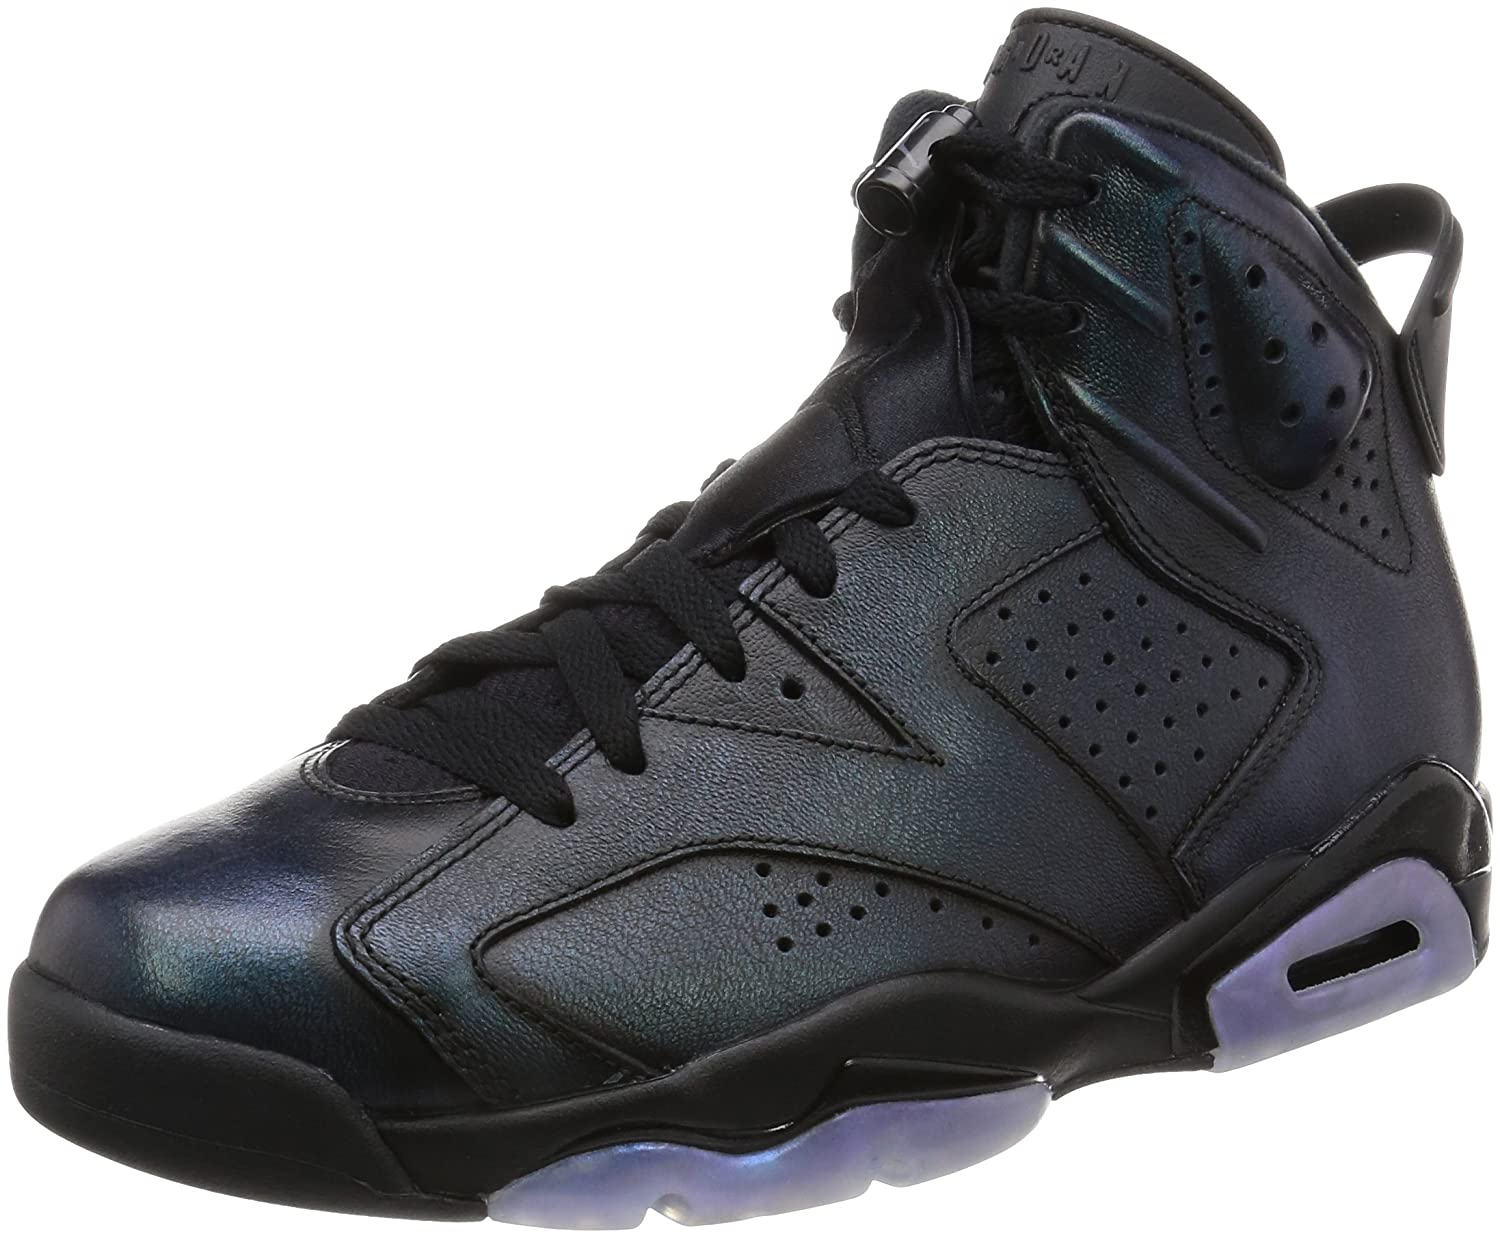 Nike Air Jordan 6 Retro As All Star - 907961-015 -  EUR 43 US 9.5 UK 8.5|Nero